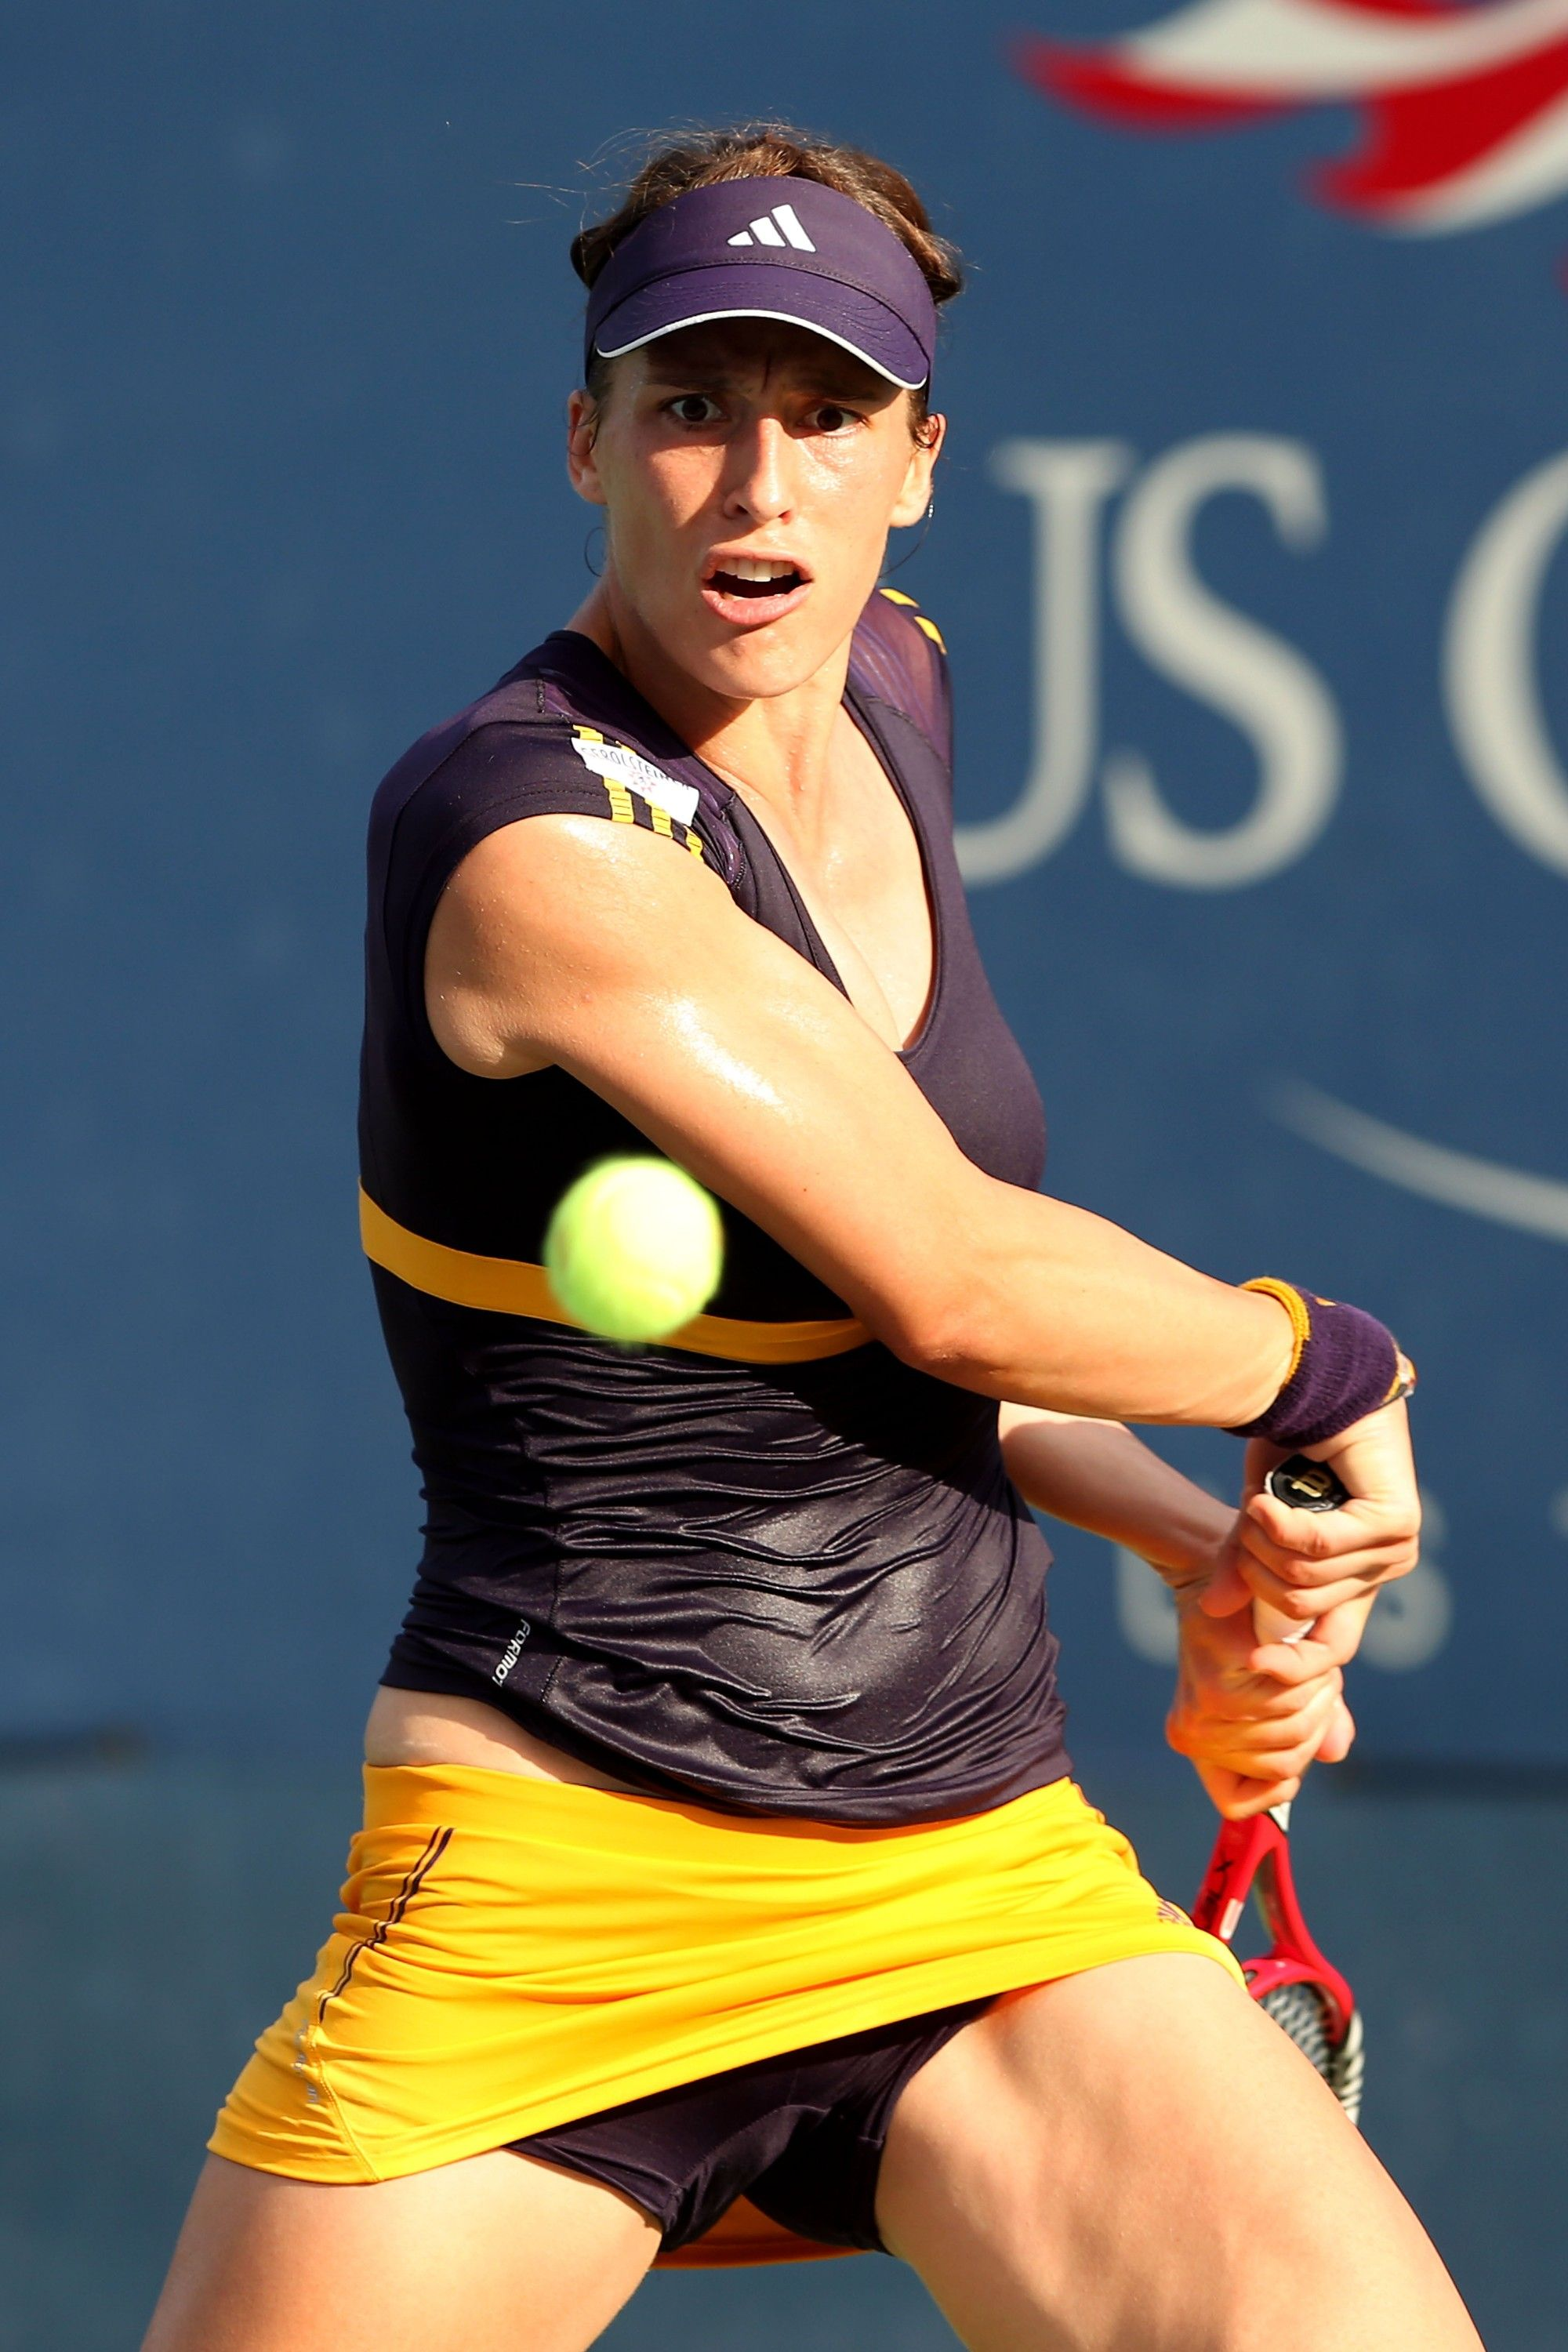 Andrea Petkovic at US Open 2012 #WTA | Tennis players female, Tennis clothes, Female athletes